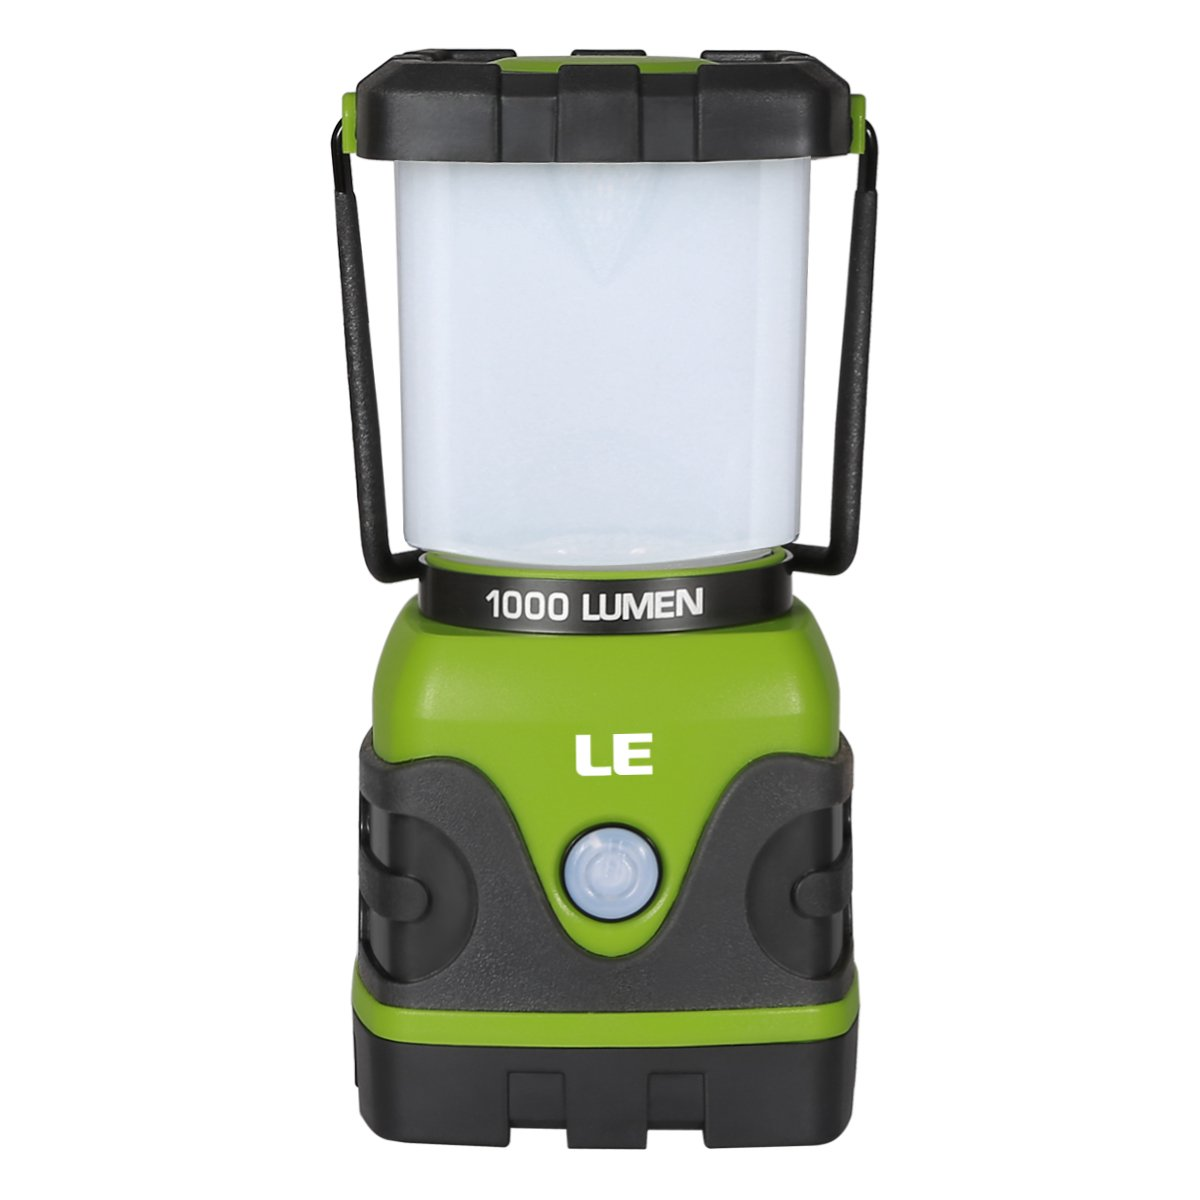 LE Portable LED Camping Lantern, 1000lm, Dimmable, 4 Lighting Modes, Battery Powered Tent Light for Home, Garden, Outdoor, Hiking, Fishing, Emergency and more